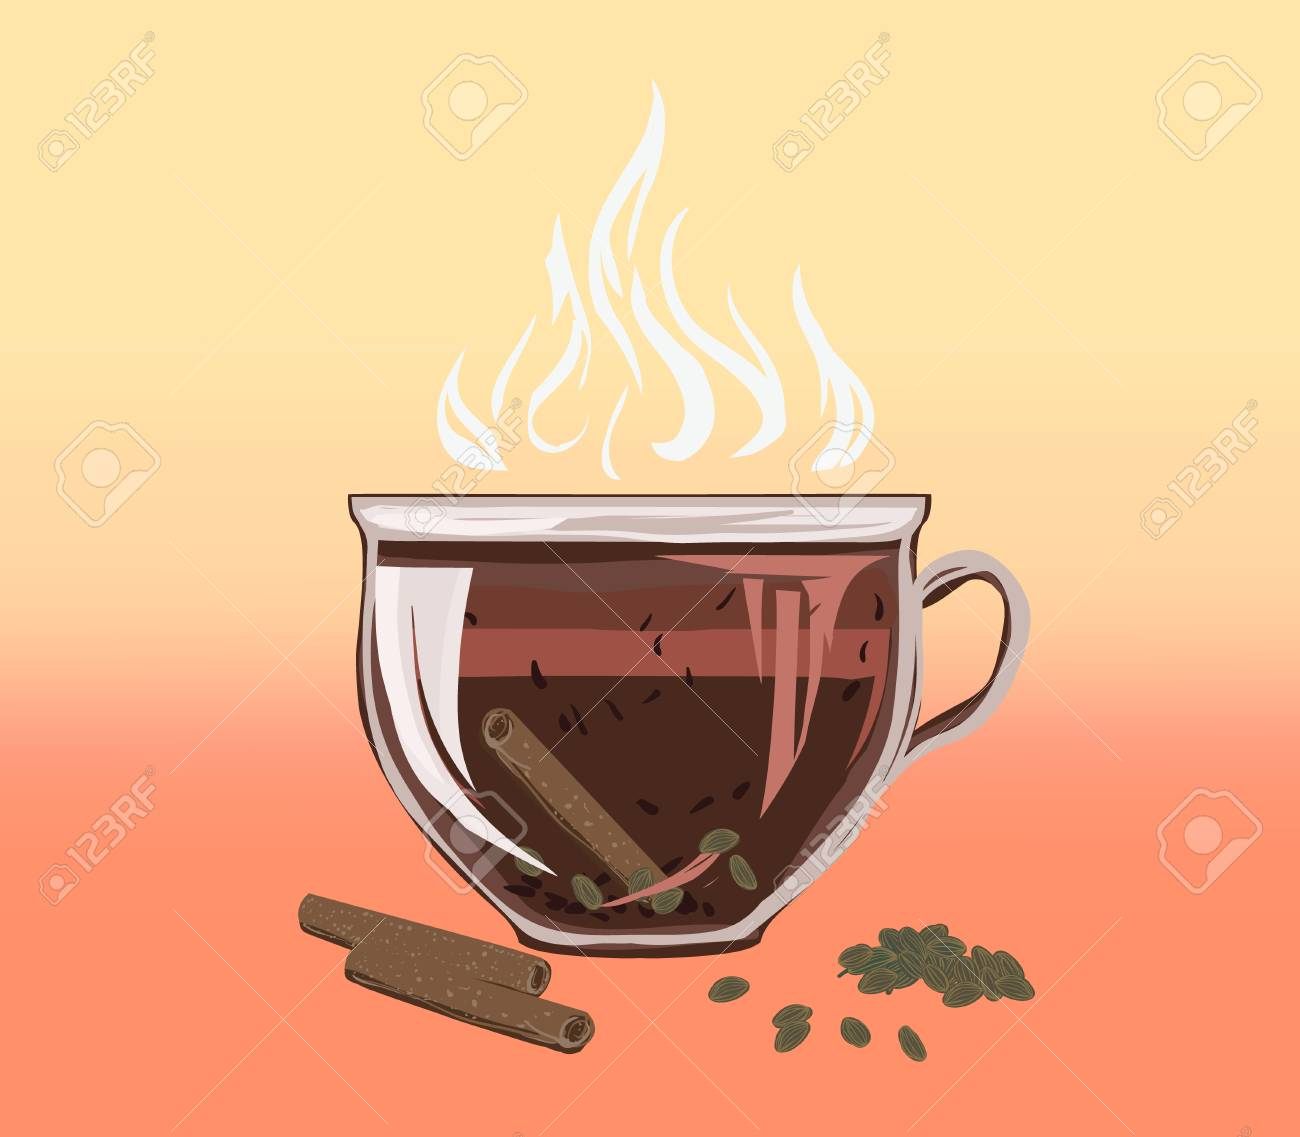 Black herbal tea in a bowl cup of cinnamon and carded cardamom. Аragrant tasty morning drink with beneficial properties for cleansing detoxifying body, for losing weight. Vector flat cozy illustration. - 101157583